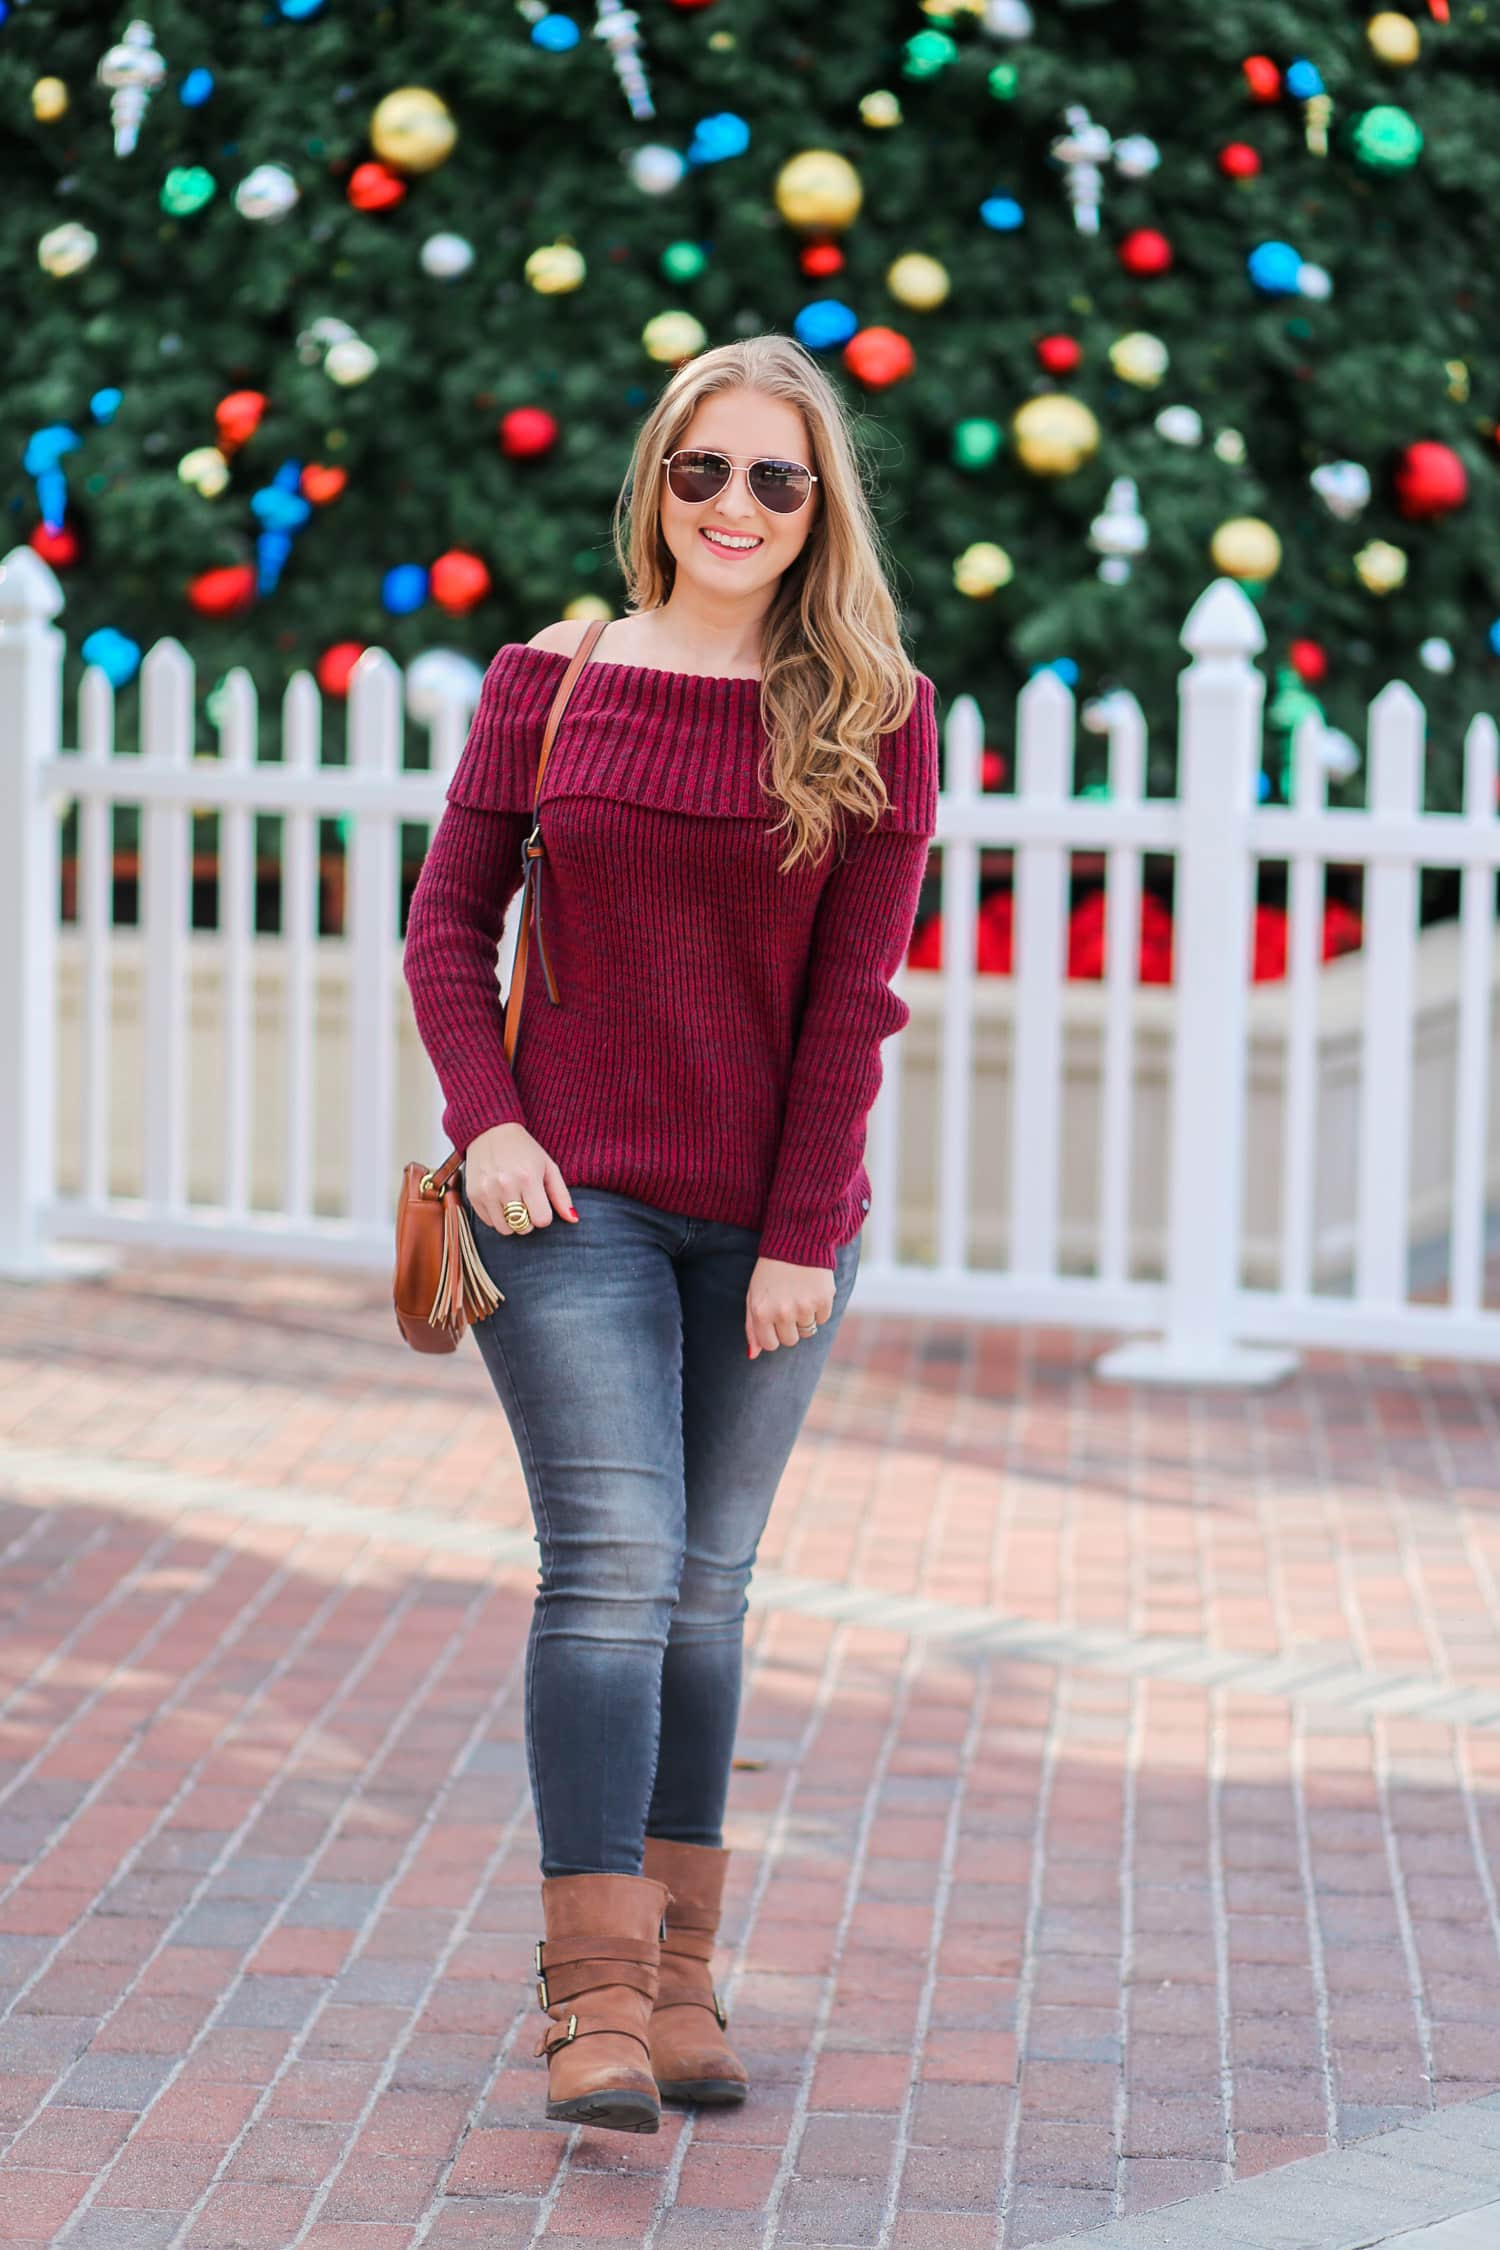 casual-winter-outfit-off-the-shoulder-sweater-gray-jeggins-moto-boots-foster-grant-rose-gold-aviator-sunglasses-7675-2